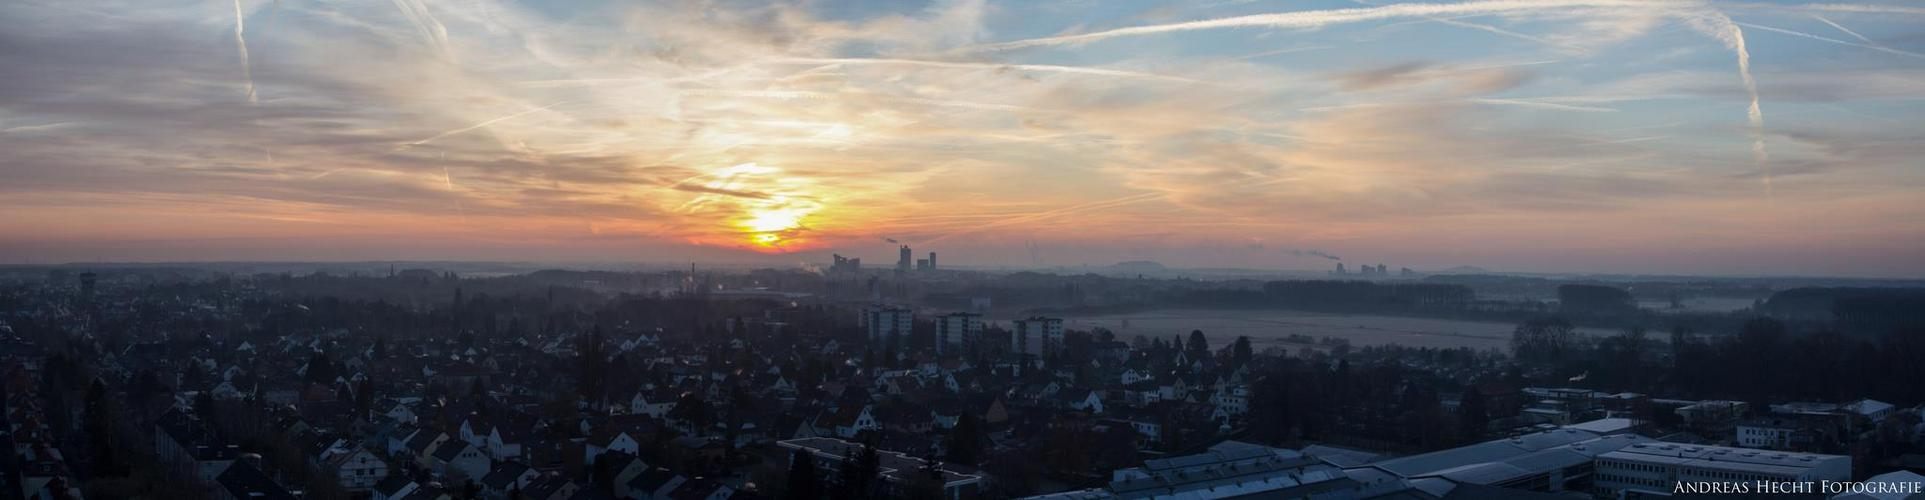 Sonnenaufgang über Hannover (Panorama)